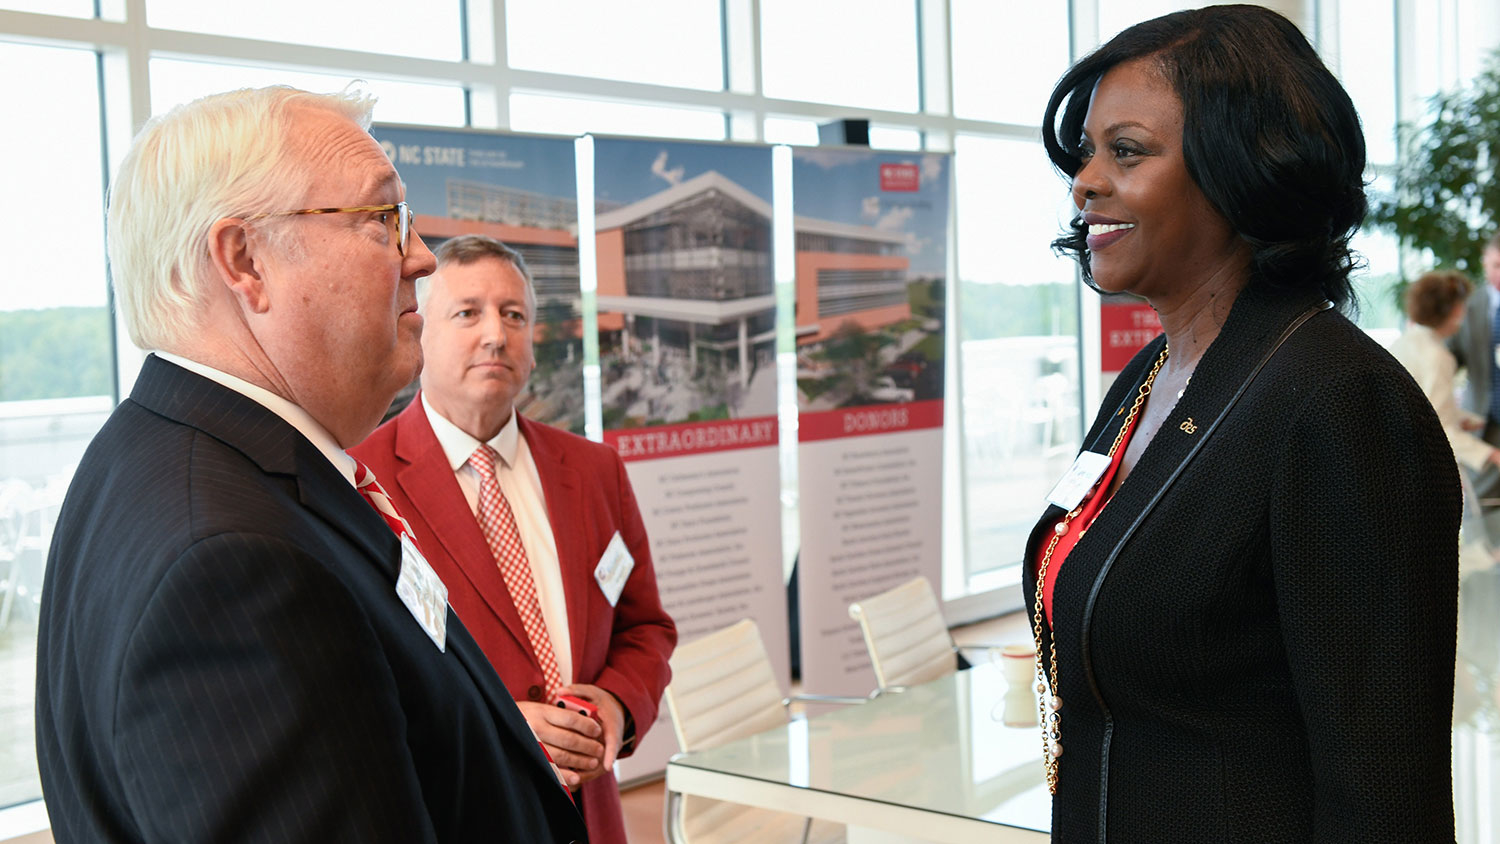 Chancellor Randy Woodson, Dean Richard Linton and USDA ARS Administrator Chavonda Jacobs-Young talking near a Plant Sciences Building display